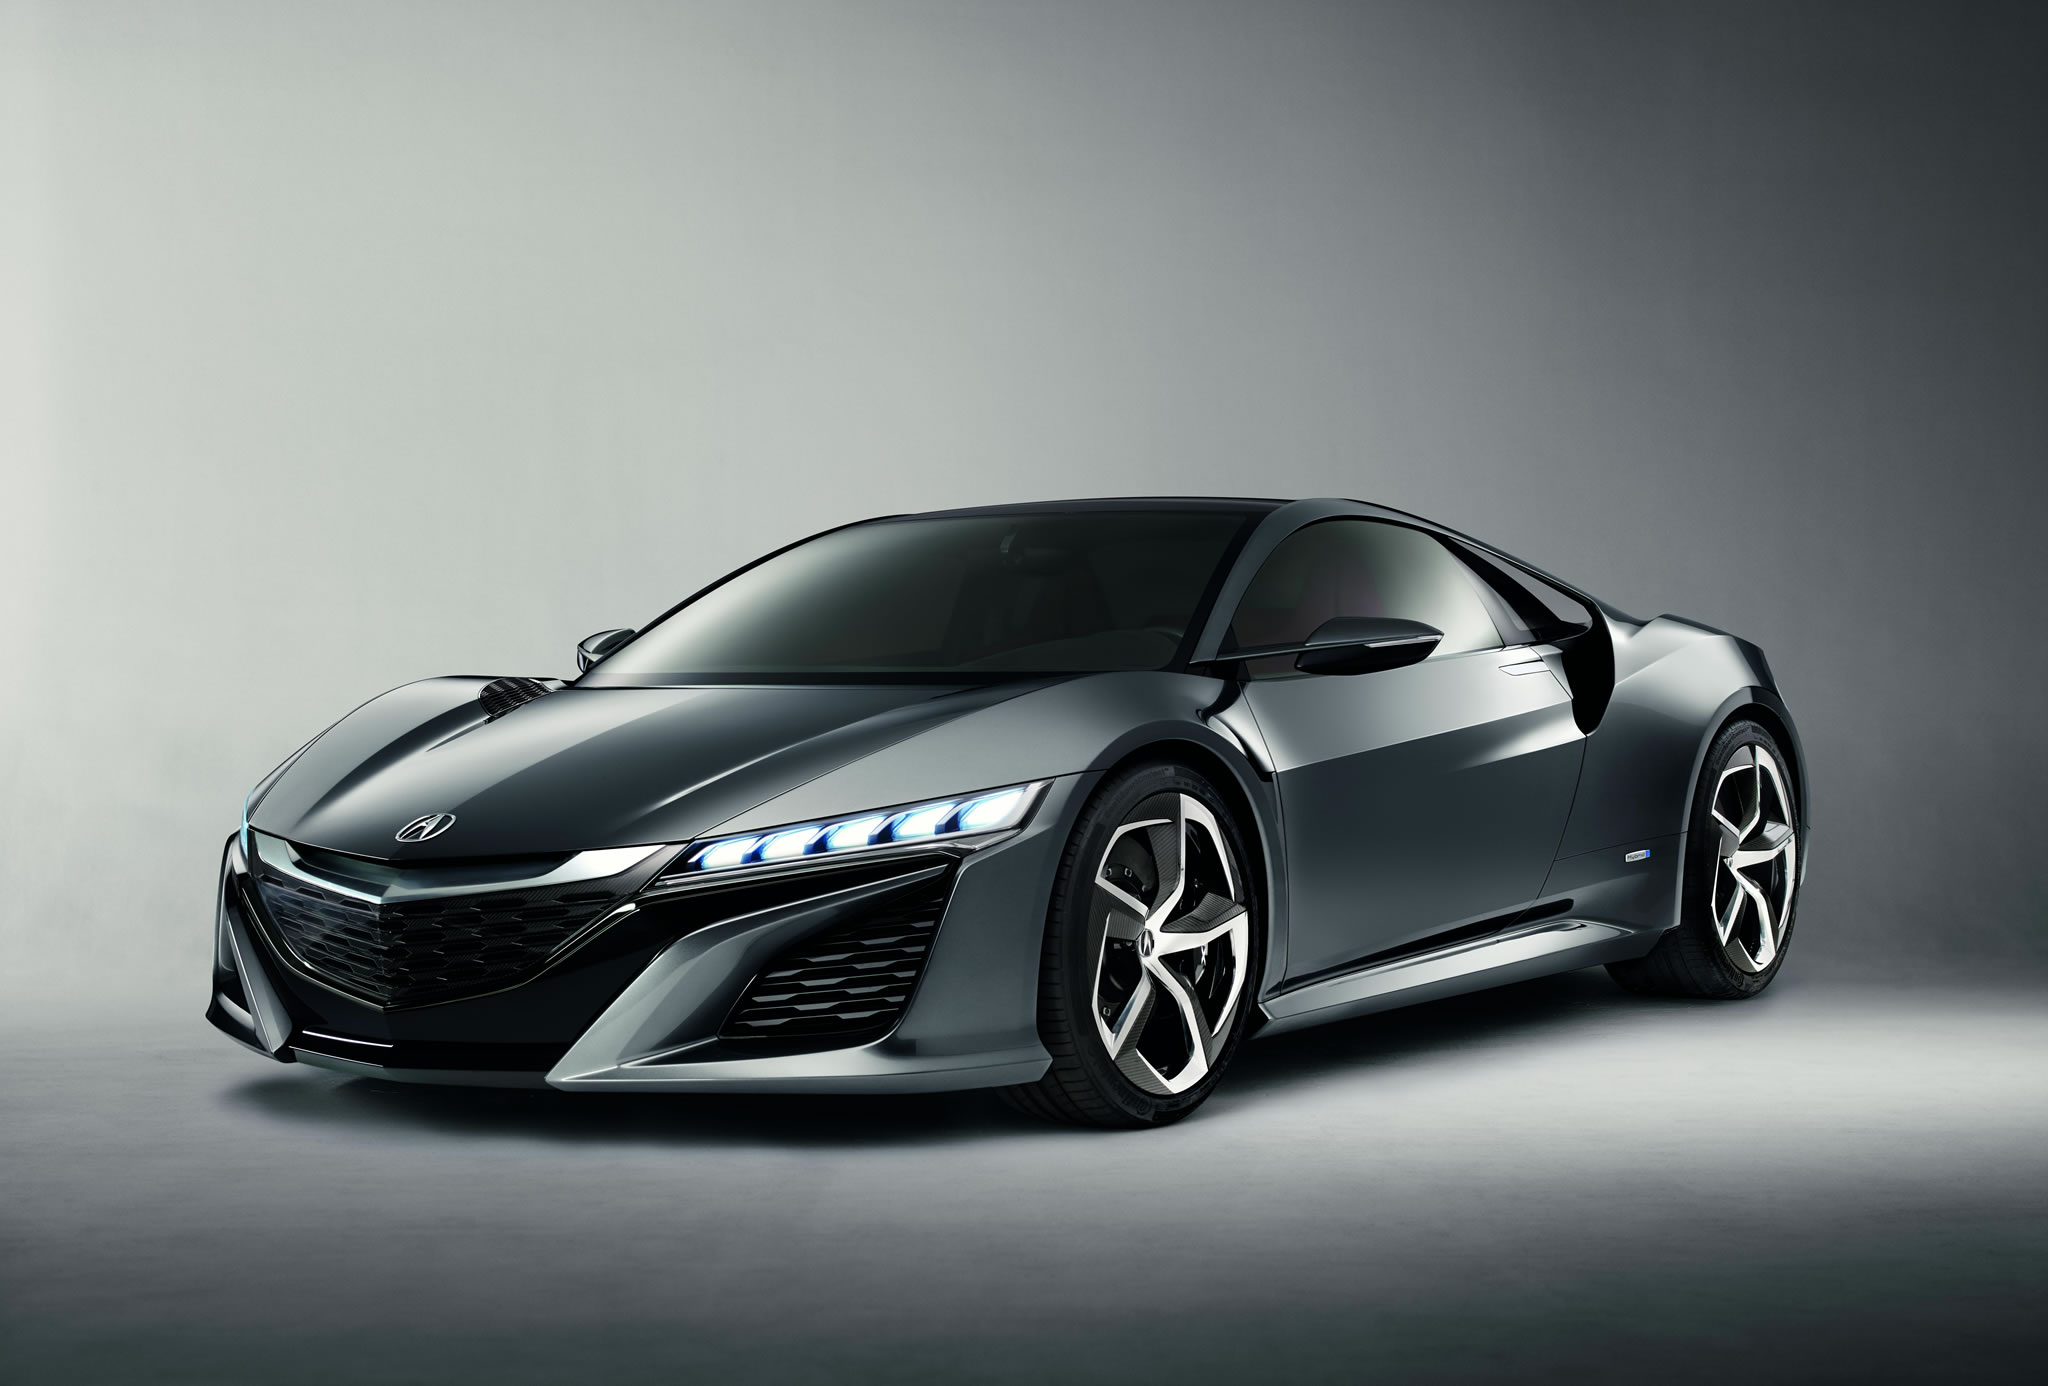 Acura Nsx To Appear At Pebble Beach Front Photo Gray